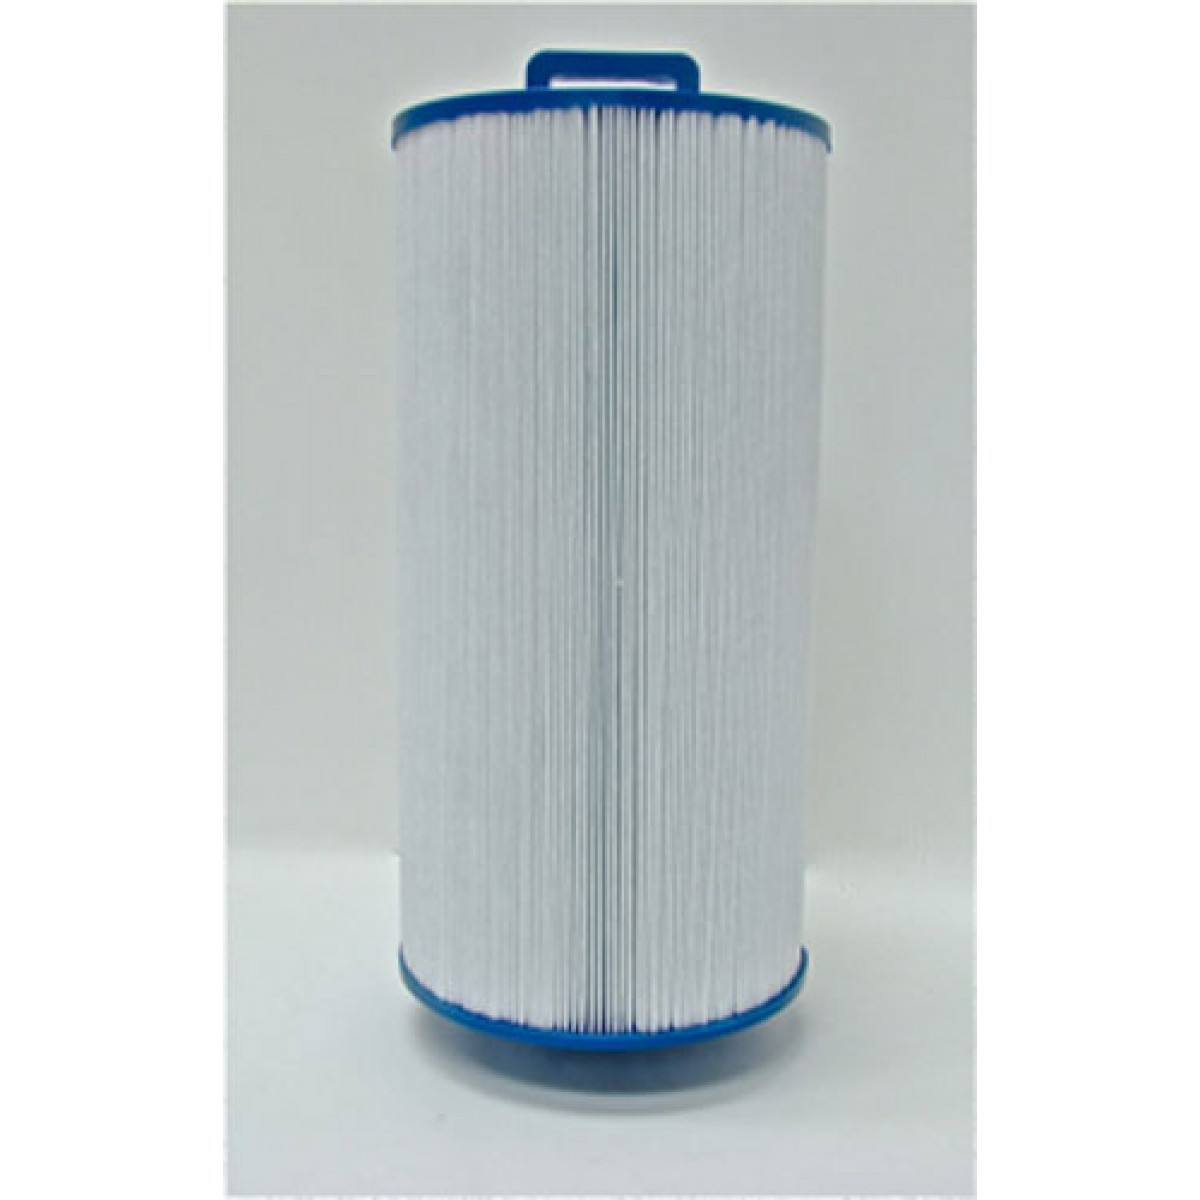 Discount Water Filters and Air Filters at Discount Filter Store.com #095FAD